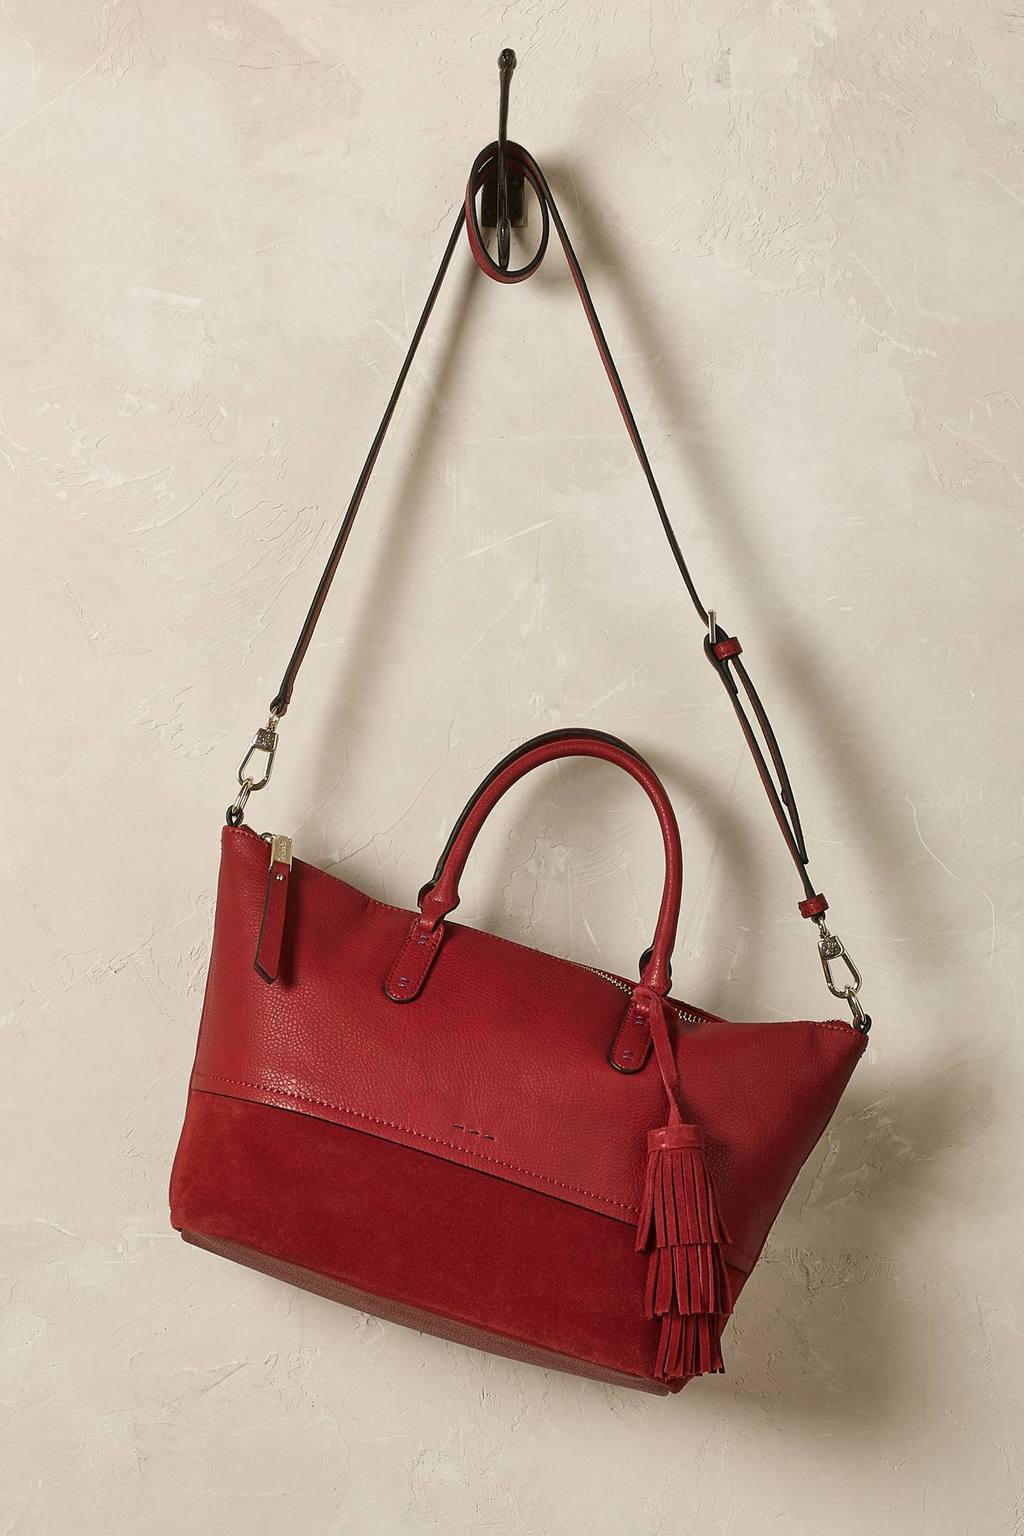 Tamarindo Shoulder Bag - predominant colour: true red; occasions: casual, creative work; type of pattern: standard; style: shoulder; length: shoulder (tucks under arm); size: standard; material: leather; embellishment: tassels; pattern: plain; finish: plain; season: s/s 2016